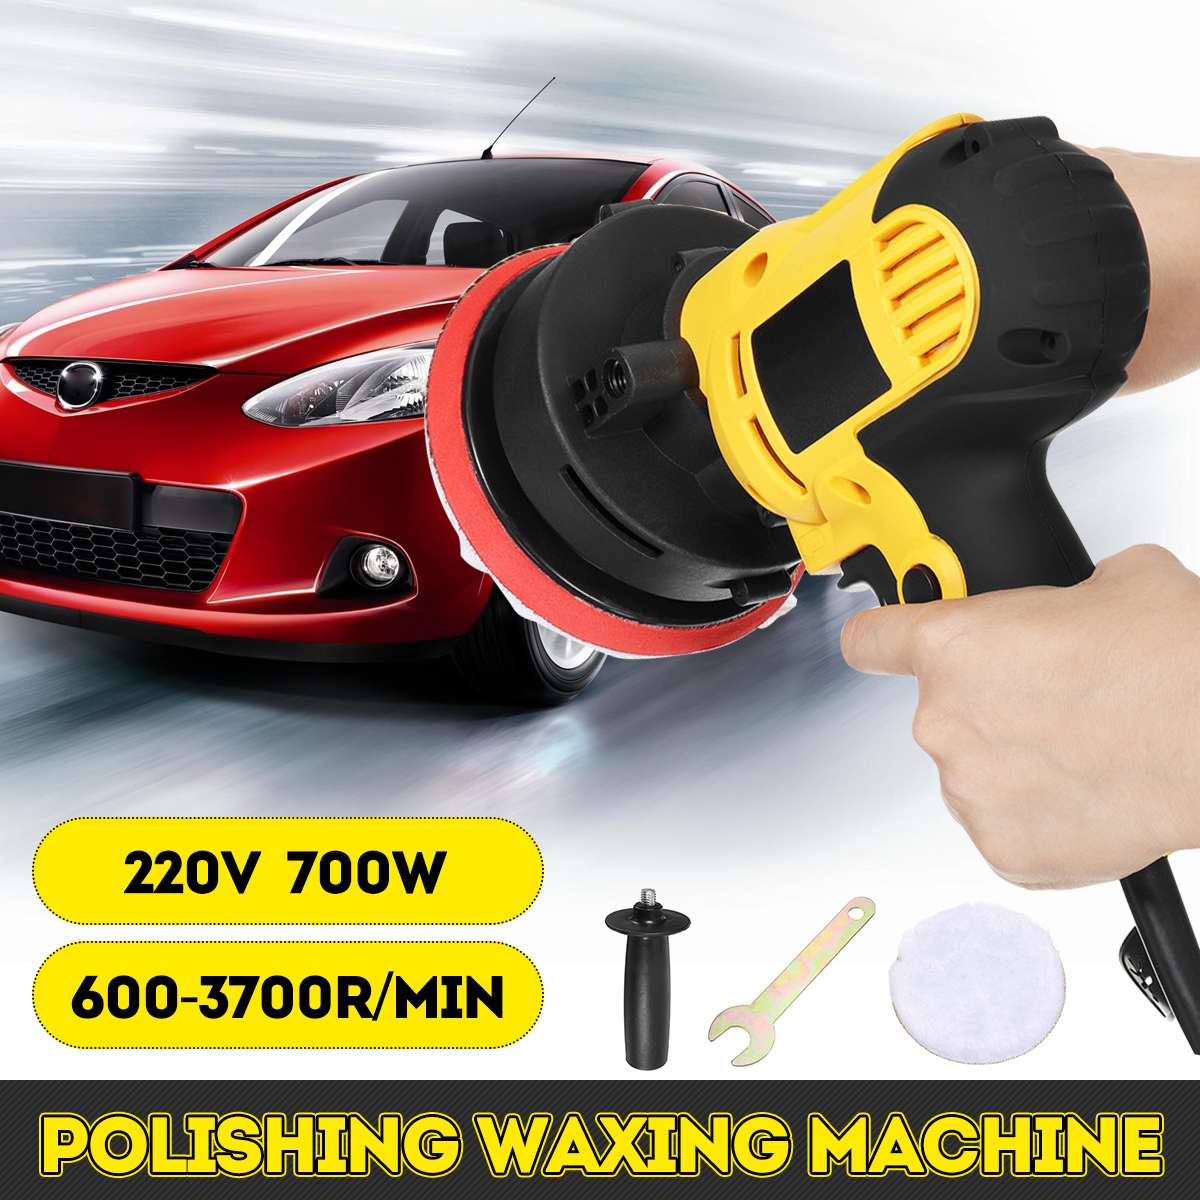 700W 600-3700rpm Electric Car Polisher Machine 220V Auto Polishing Machine 6 Speed Sander Polish Waxing Tools Car Accessories